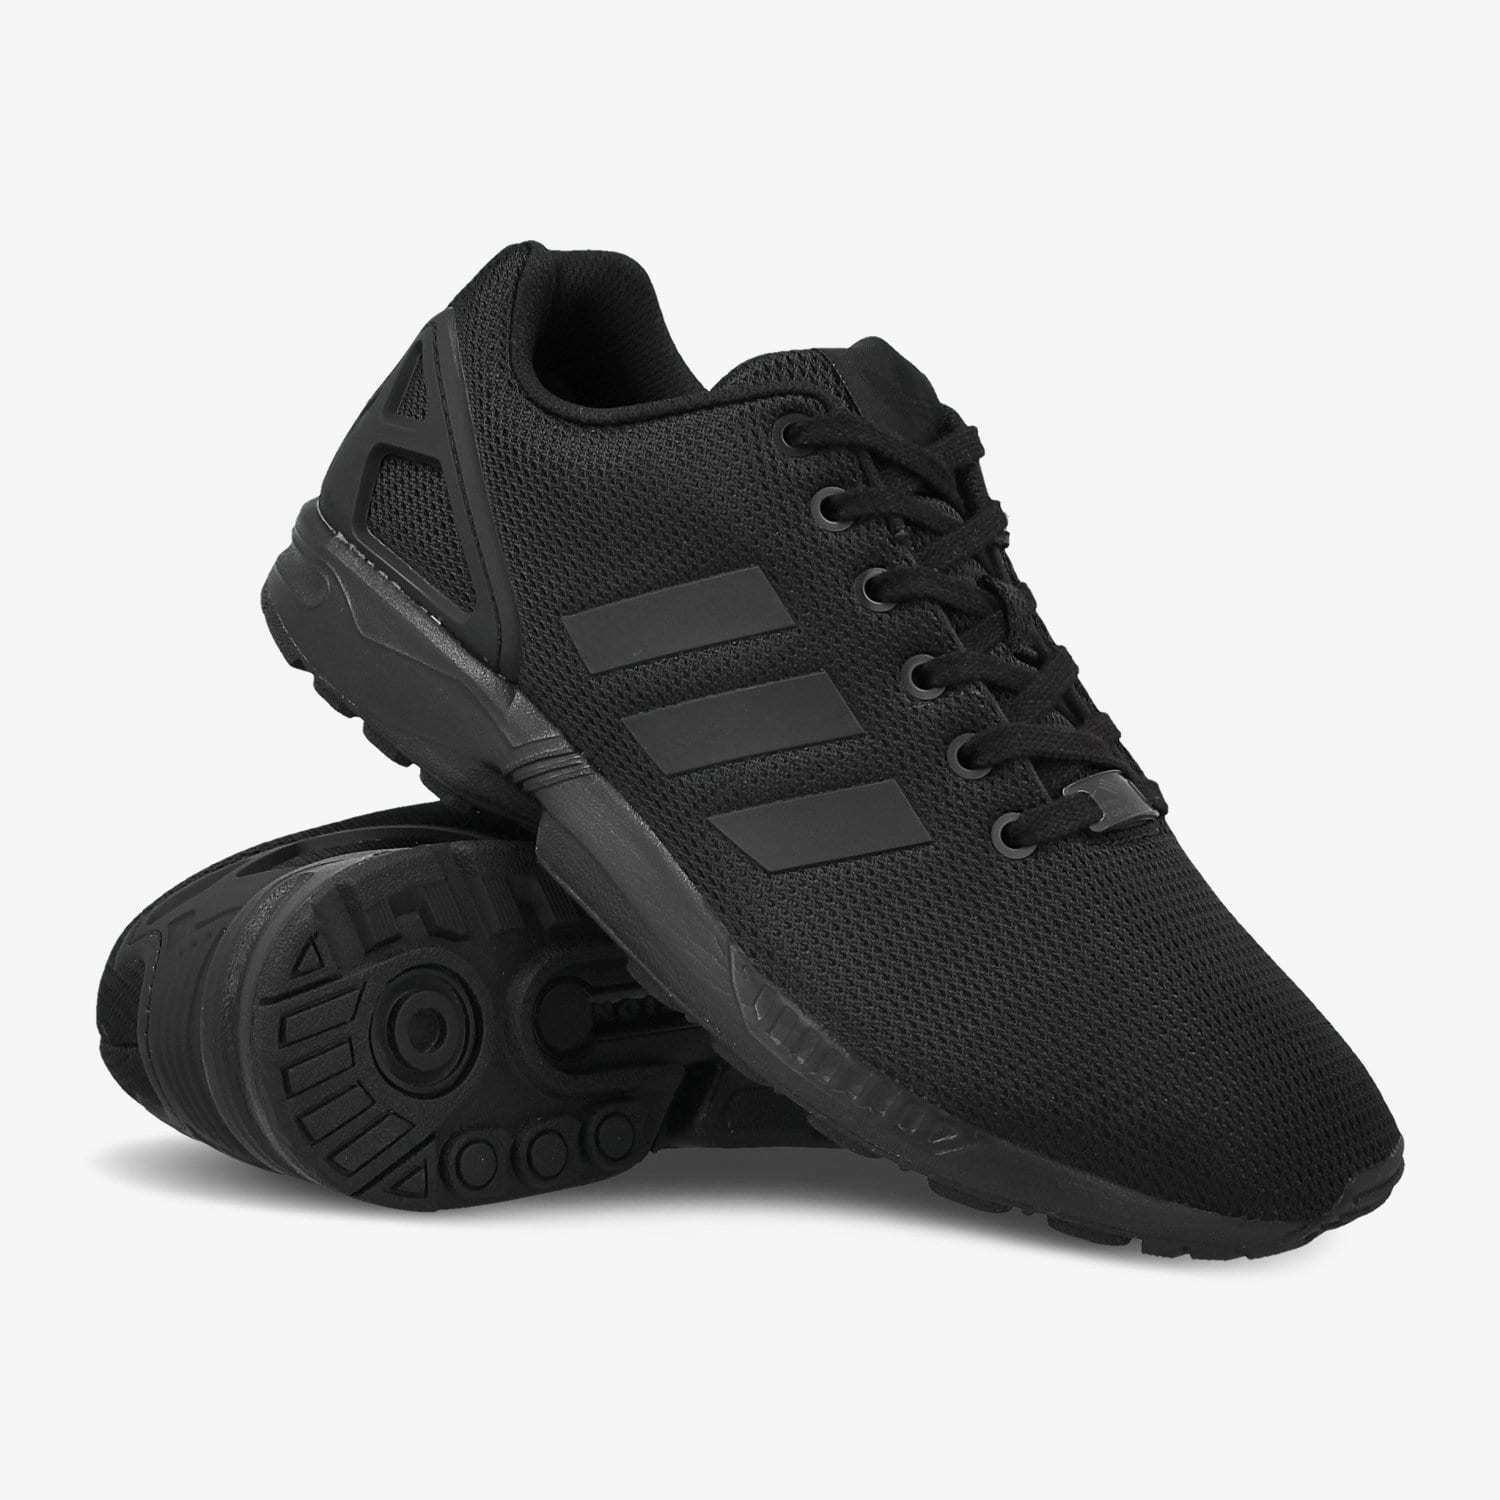 sale retailer e10eb c3df3 ADIDAS ZX FLUX S32279 MEN'S BLACK ORIGINAL WALKING OUTDOOR SHOES SNEAKERS  NEW!